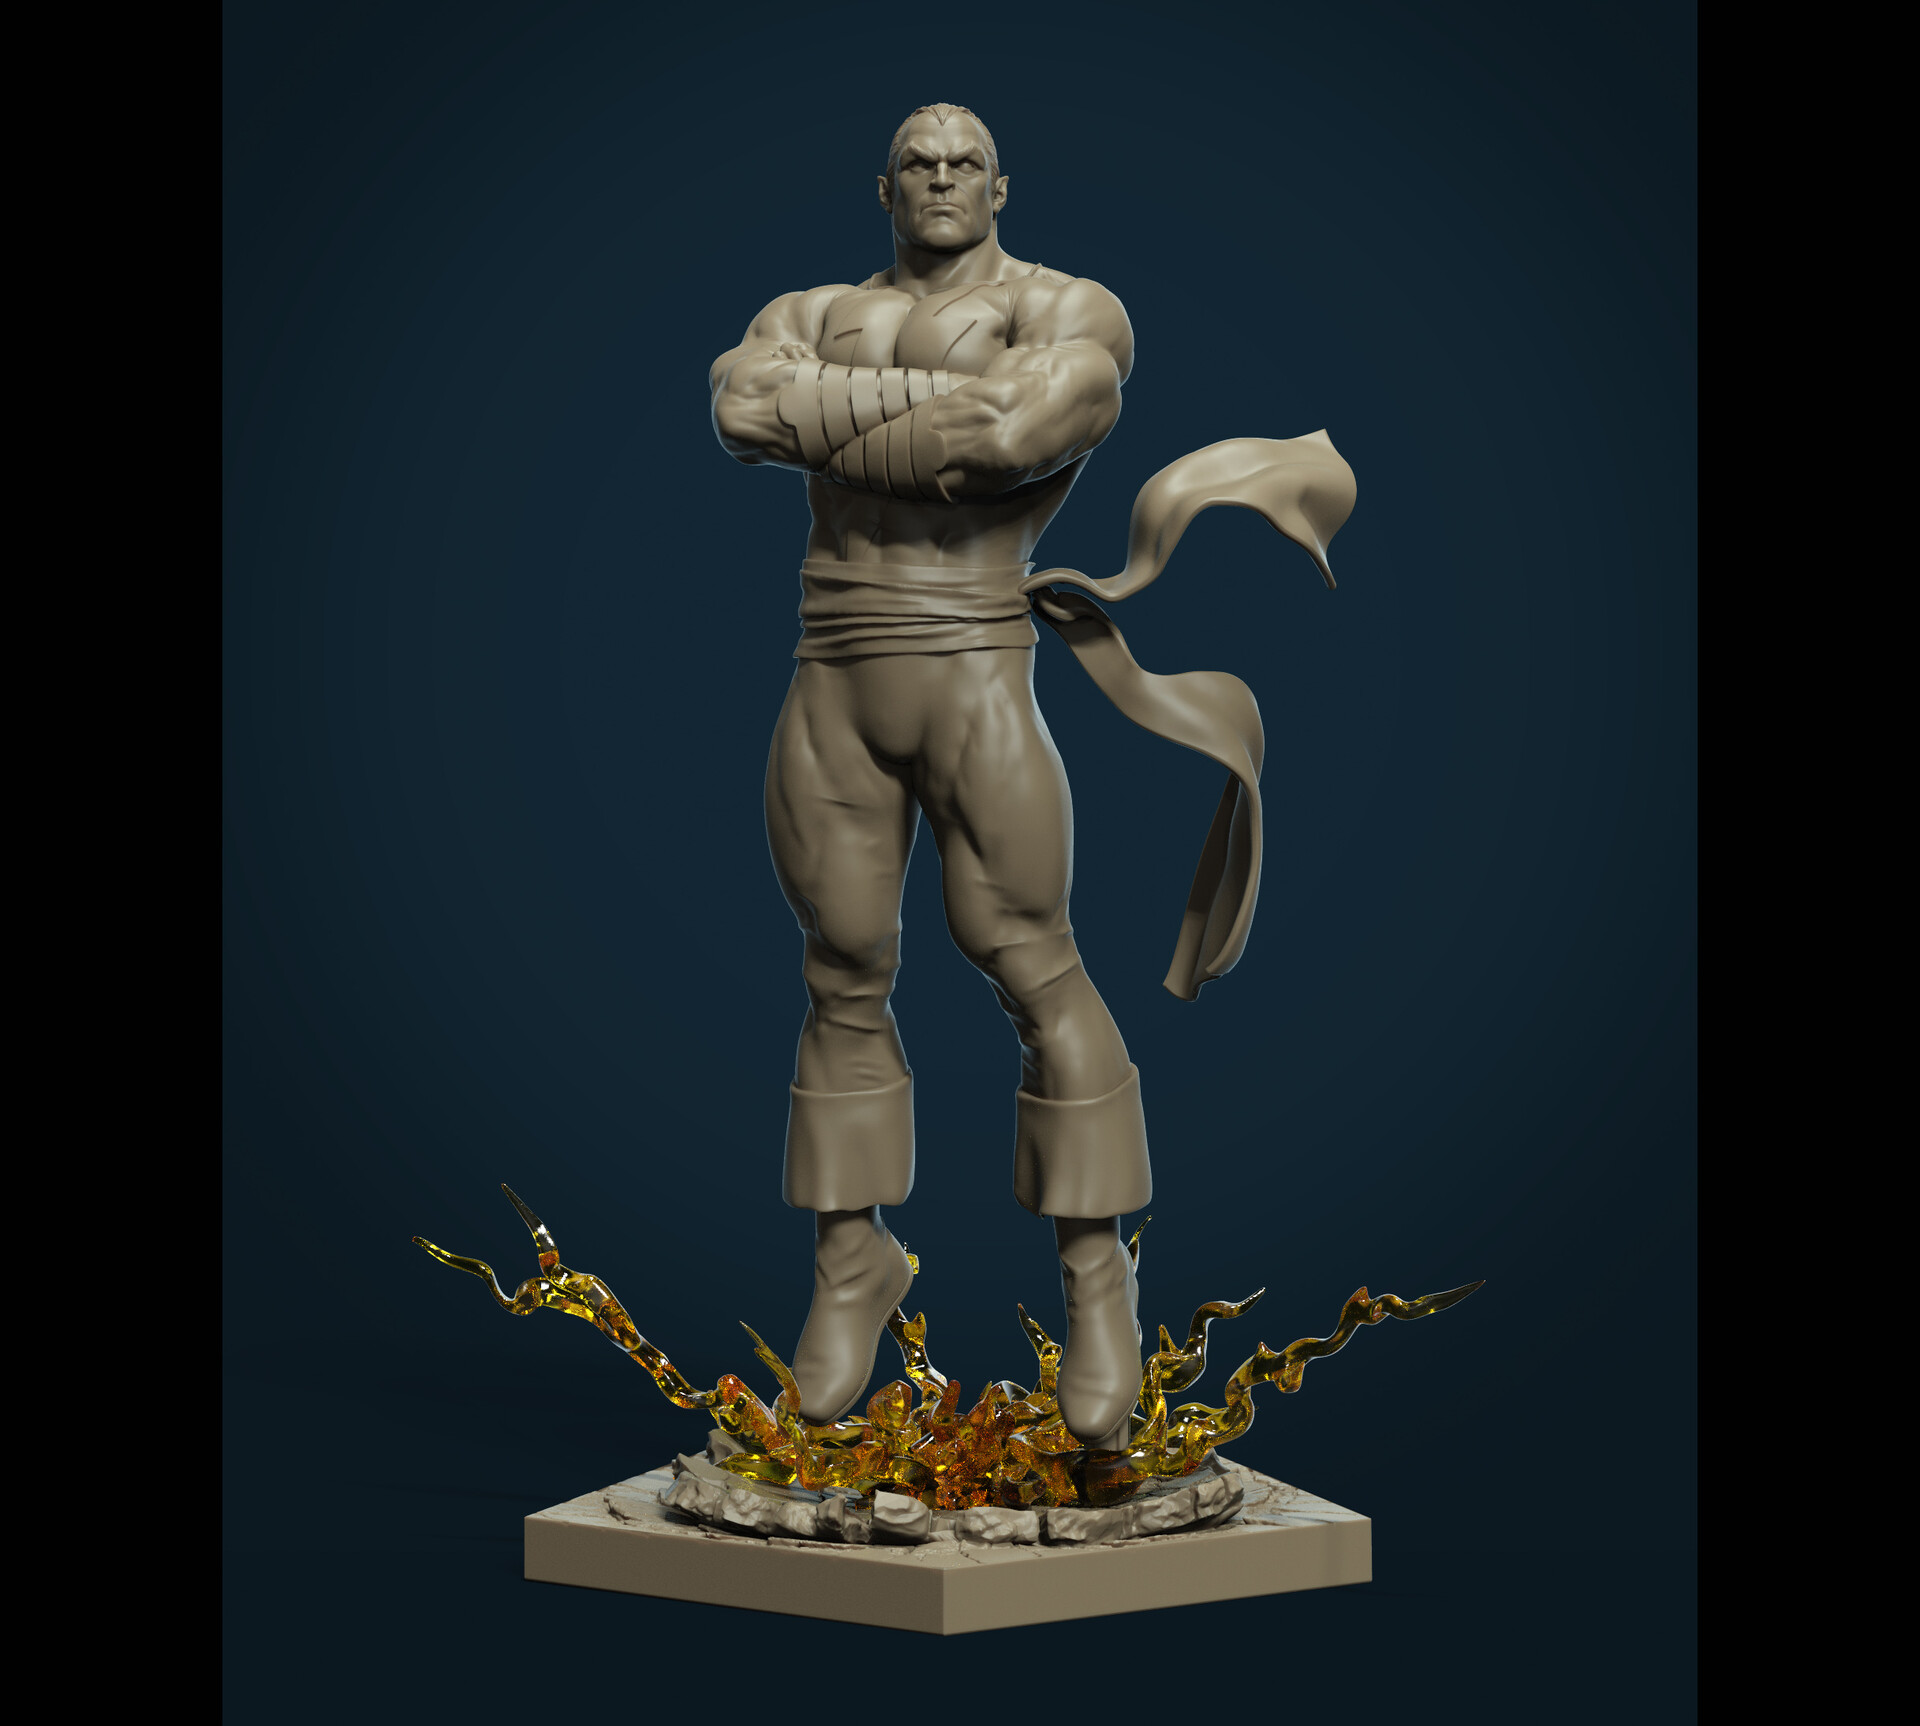 Victor hugo sousa blackadam clay 01